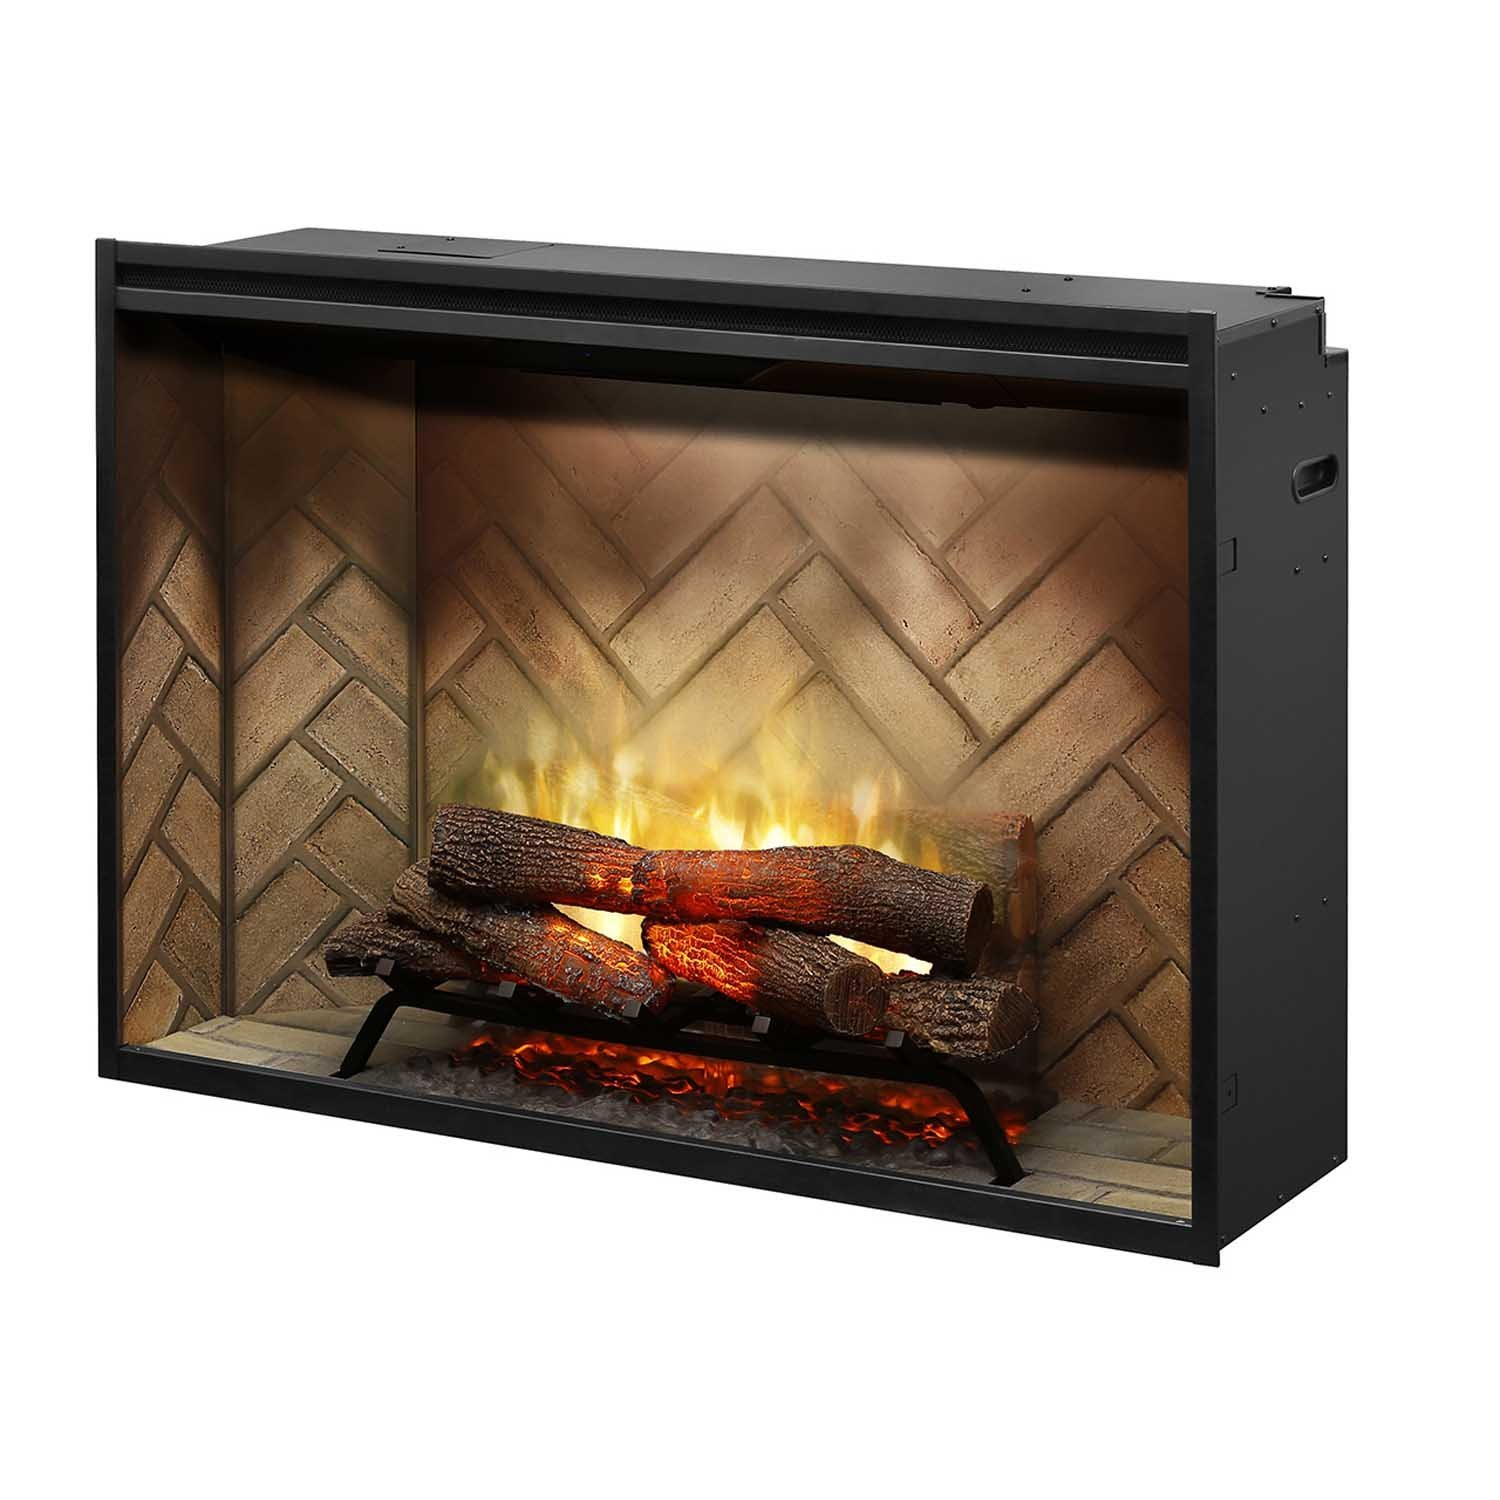 DIMPLEX NORTH AMERICA RBF42 Revillusion Electric Fireplace by DIMPLEX NORTH AMERICA